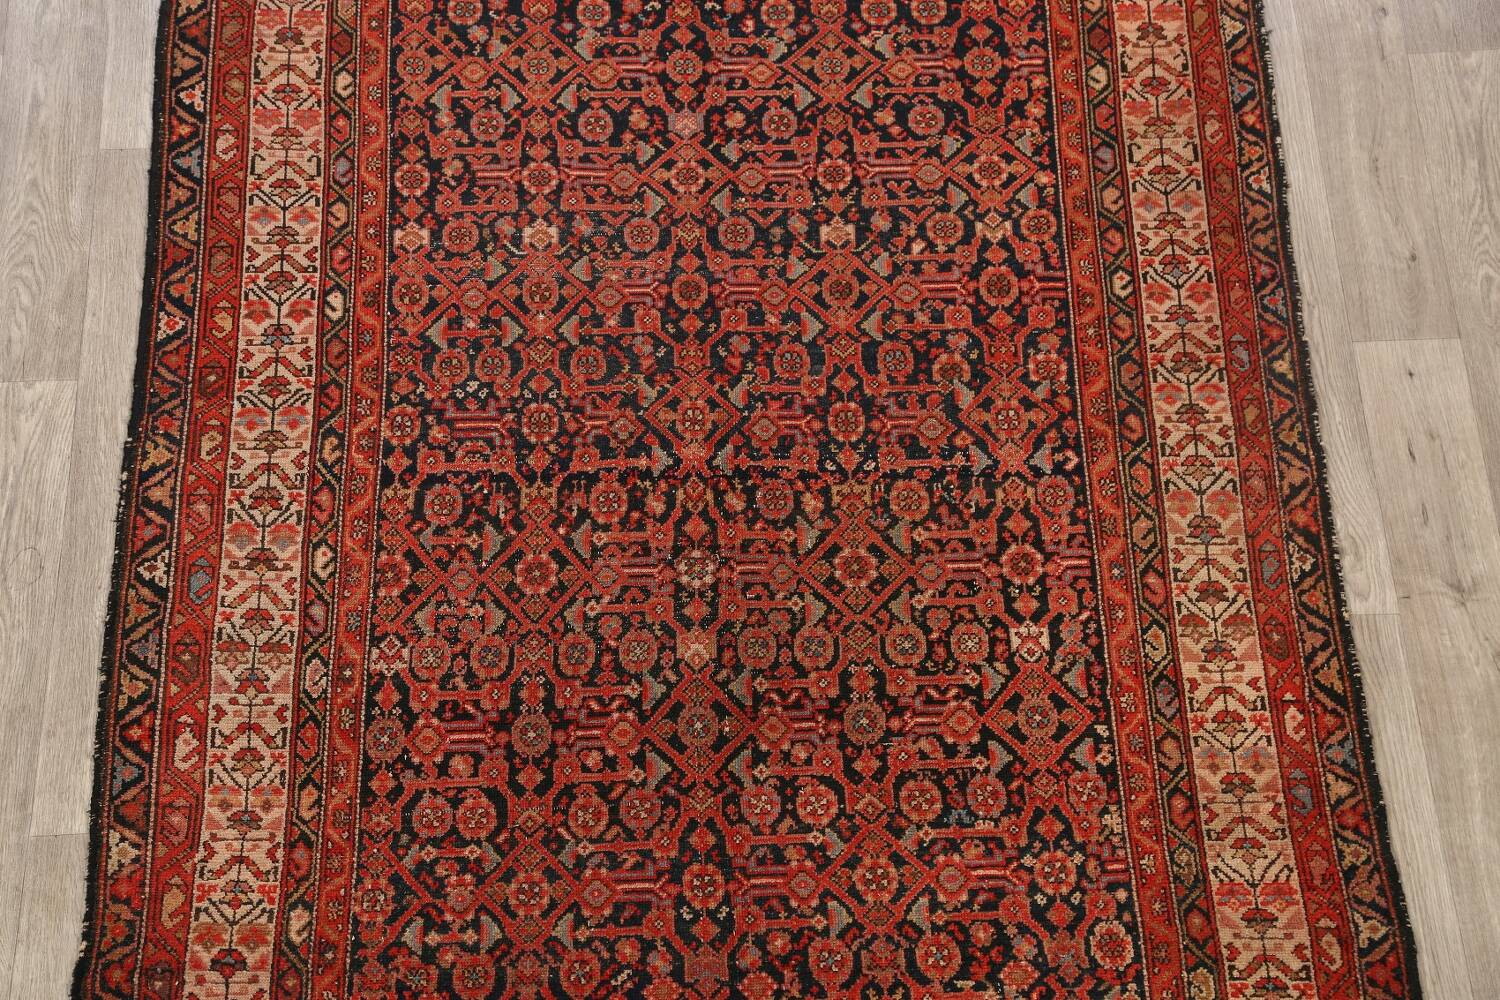 Pre-1900 Antique Malayer Vegetable Dye Persian Area Rug 5x7 image 3